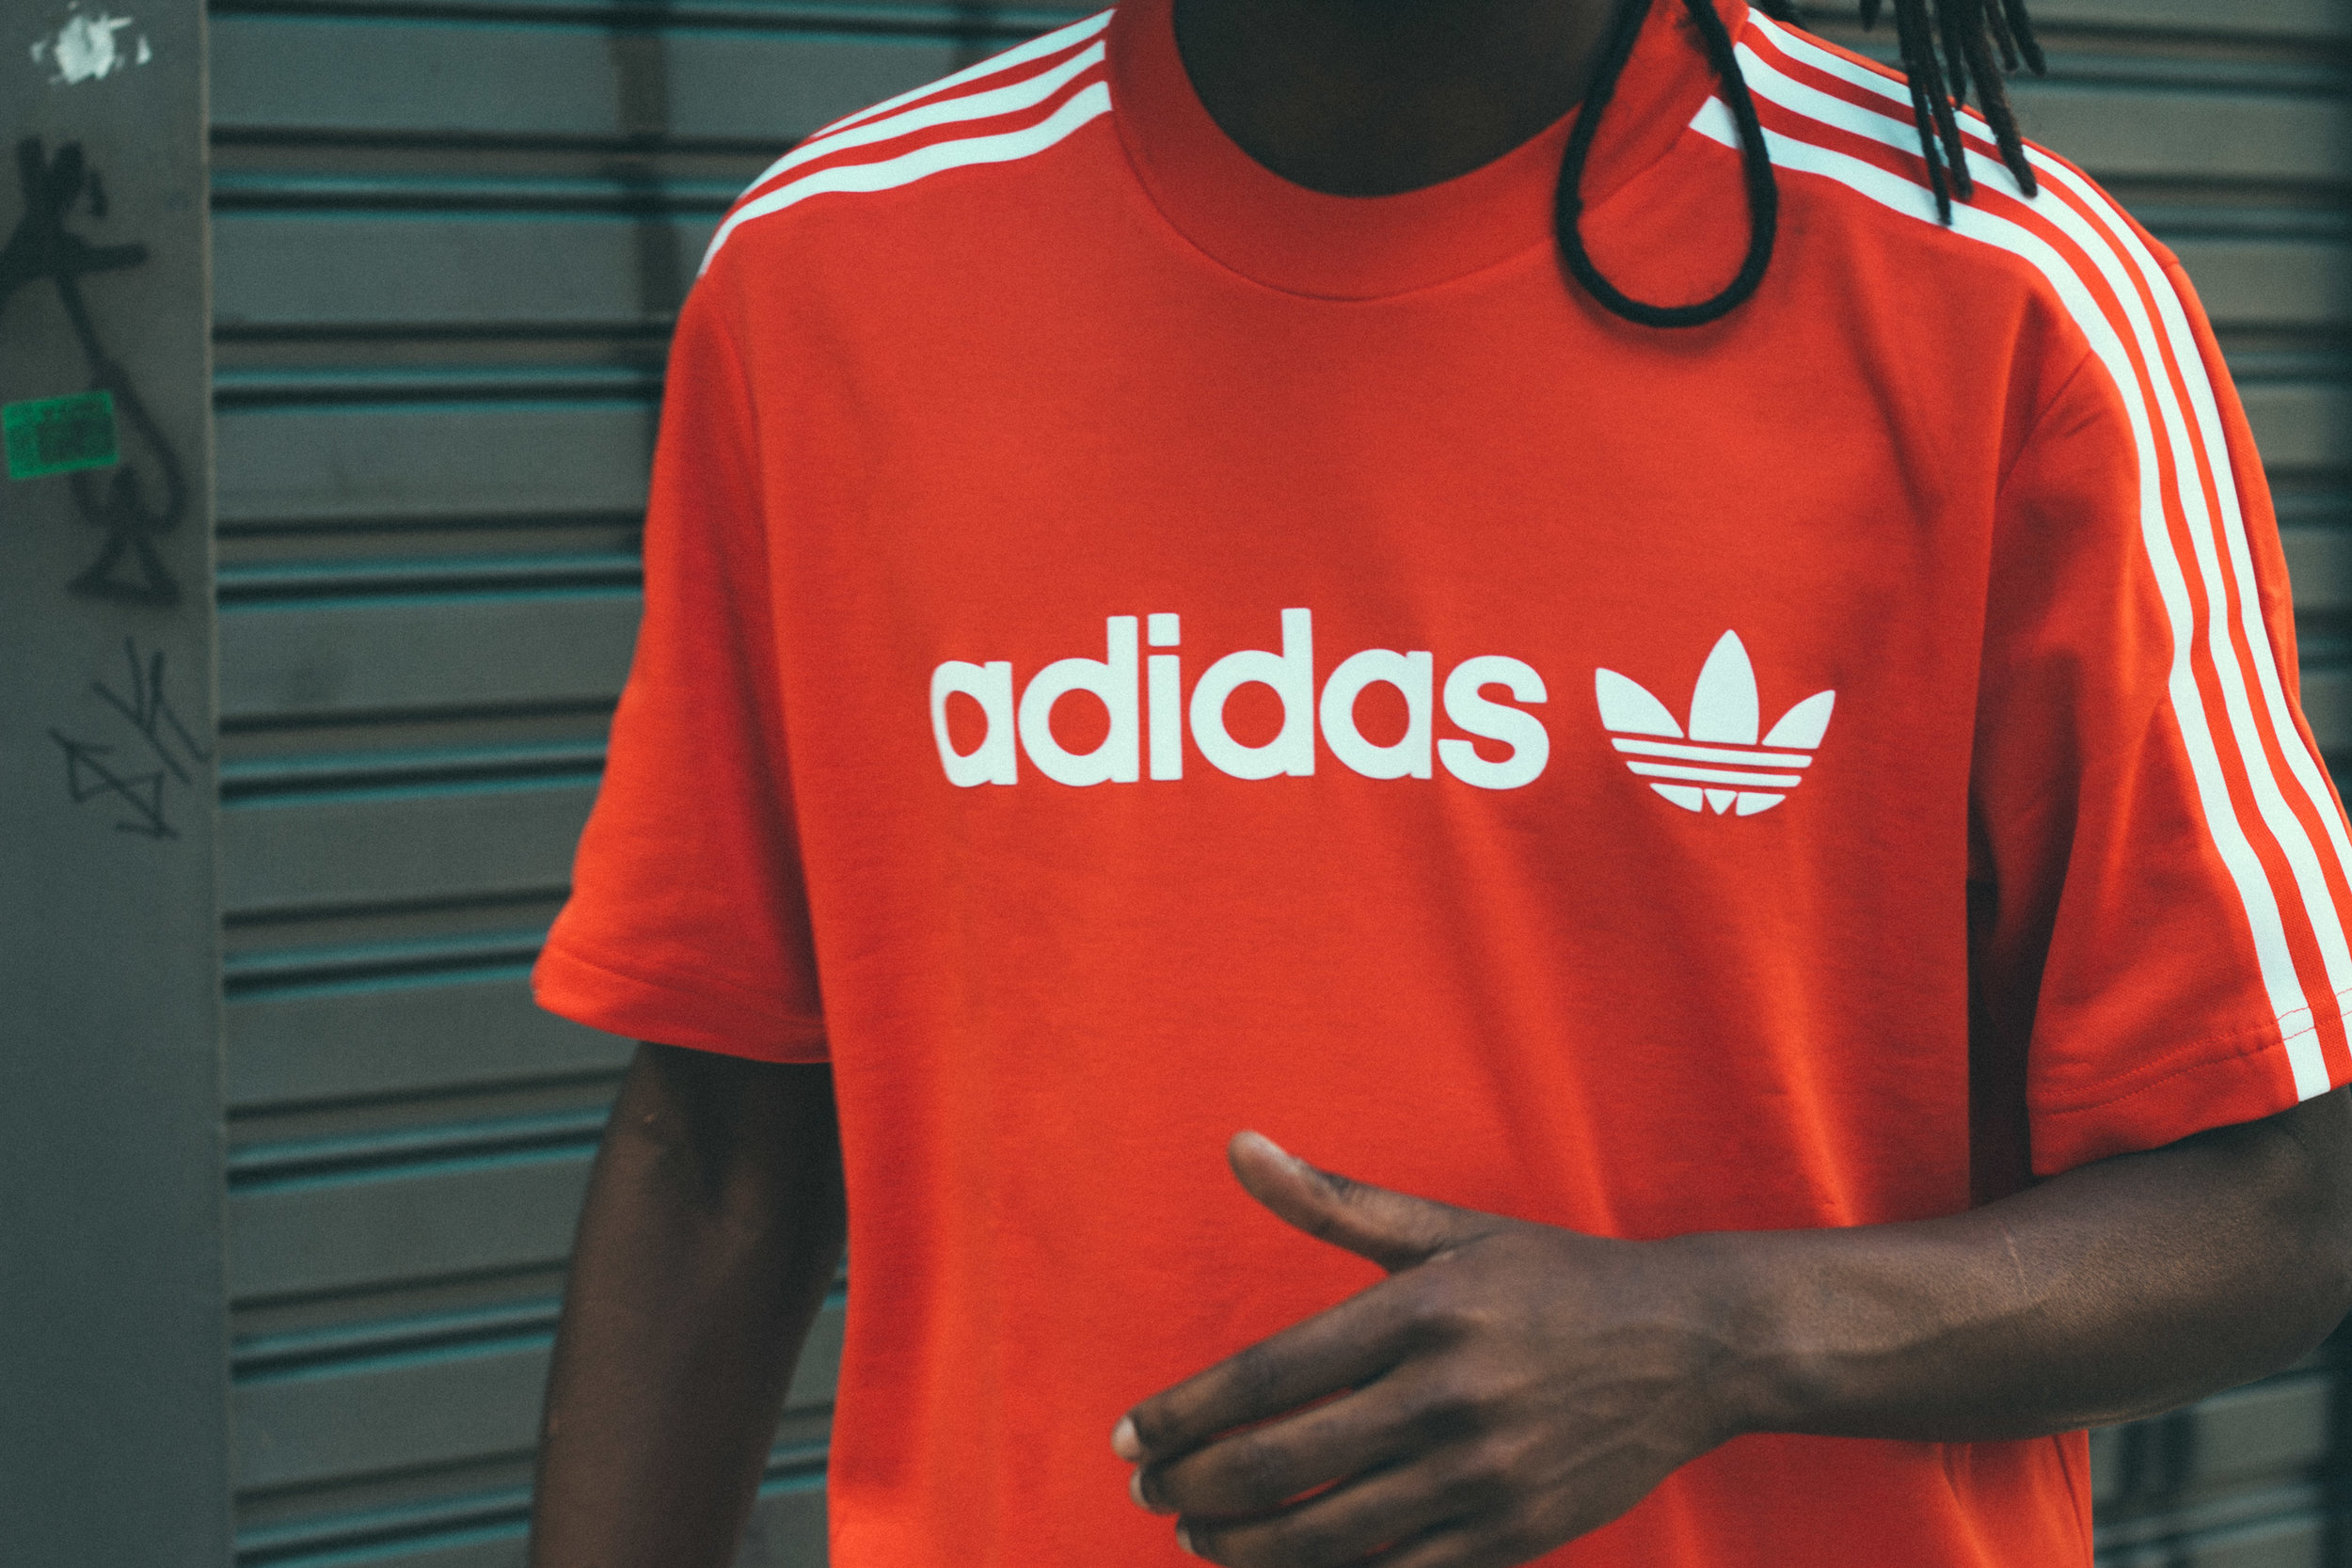 Adidas® - Logo Design: 3 leaves and 3 stripes